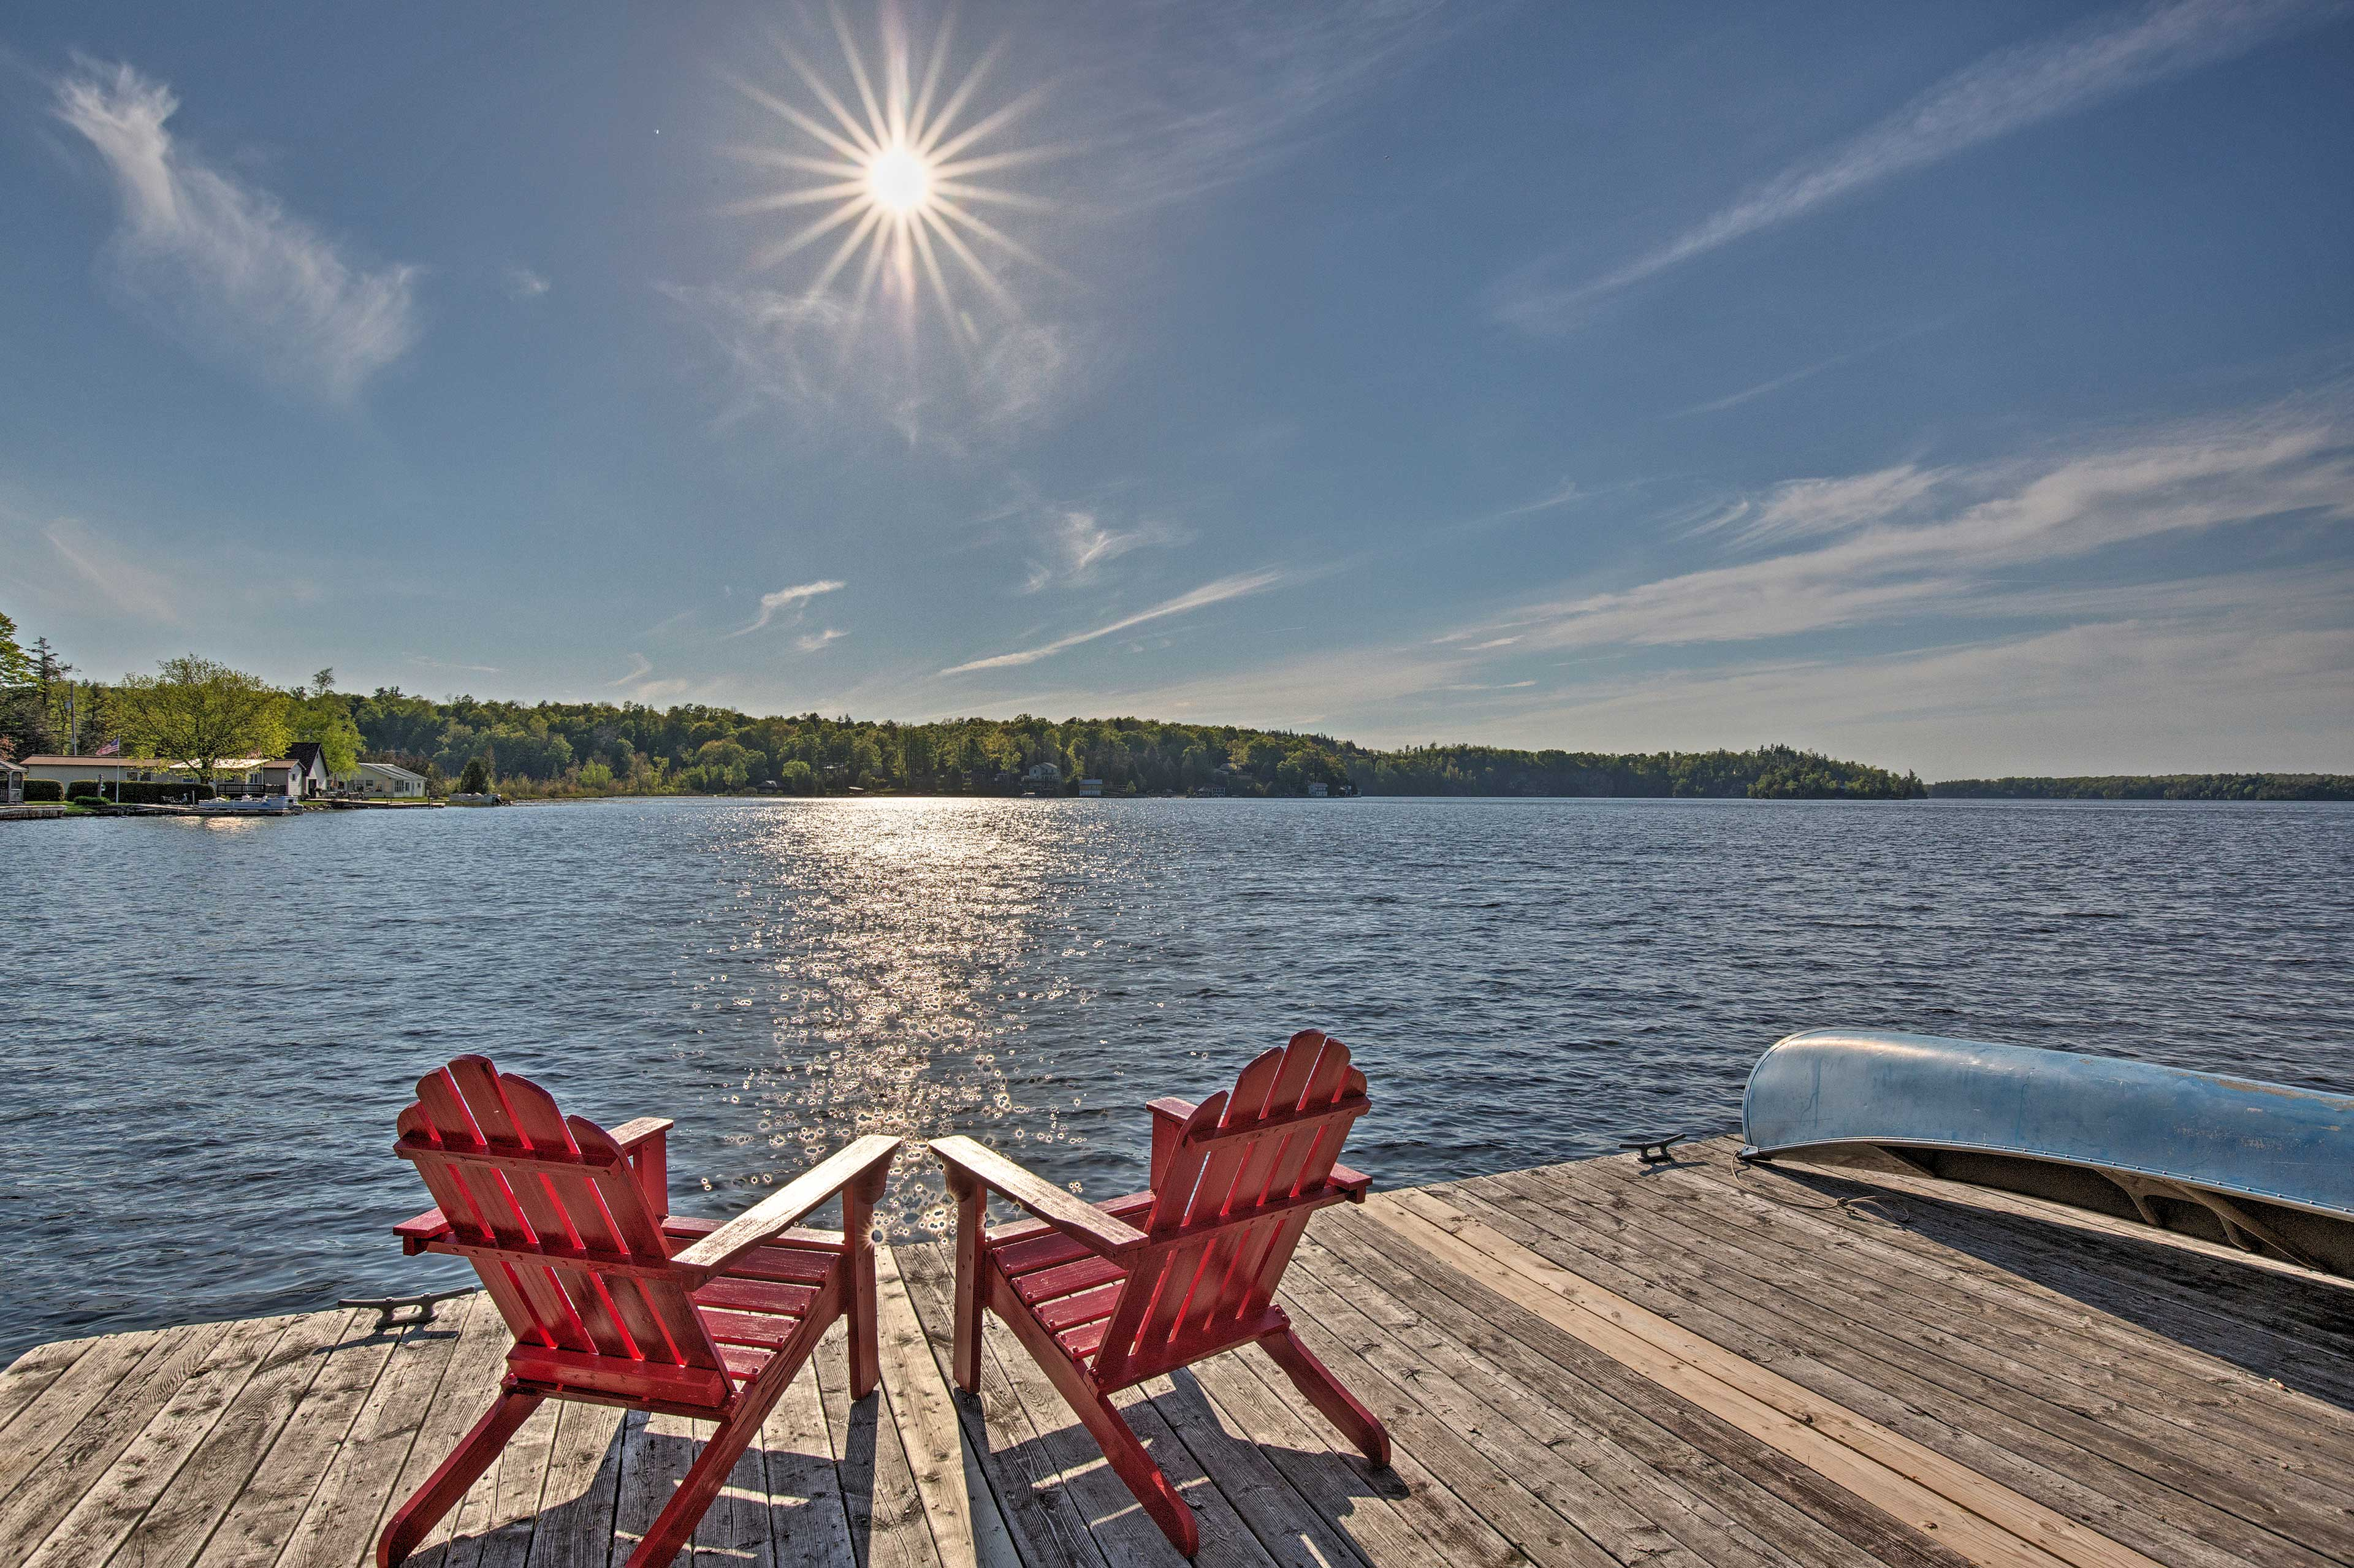 The private dock is ideal for parking your boat, swimming, and fishing.